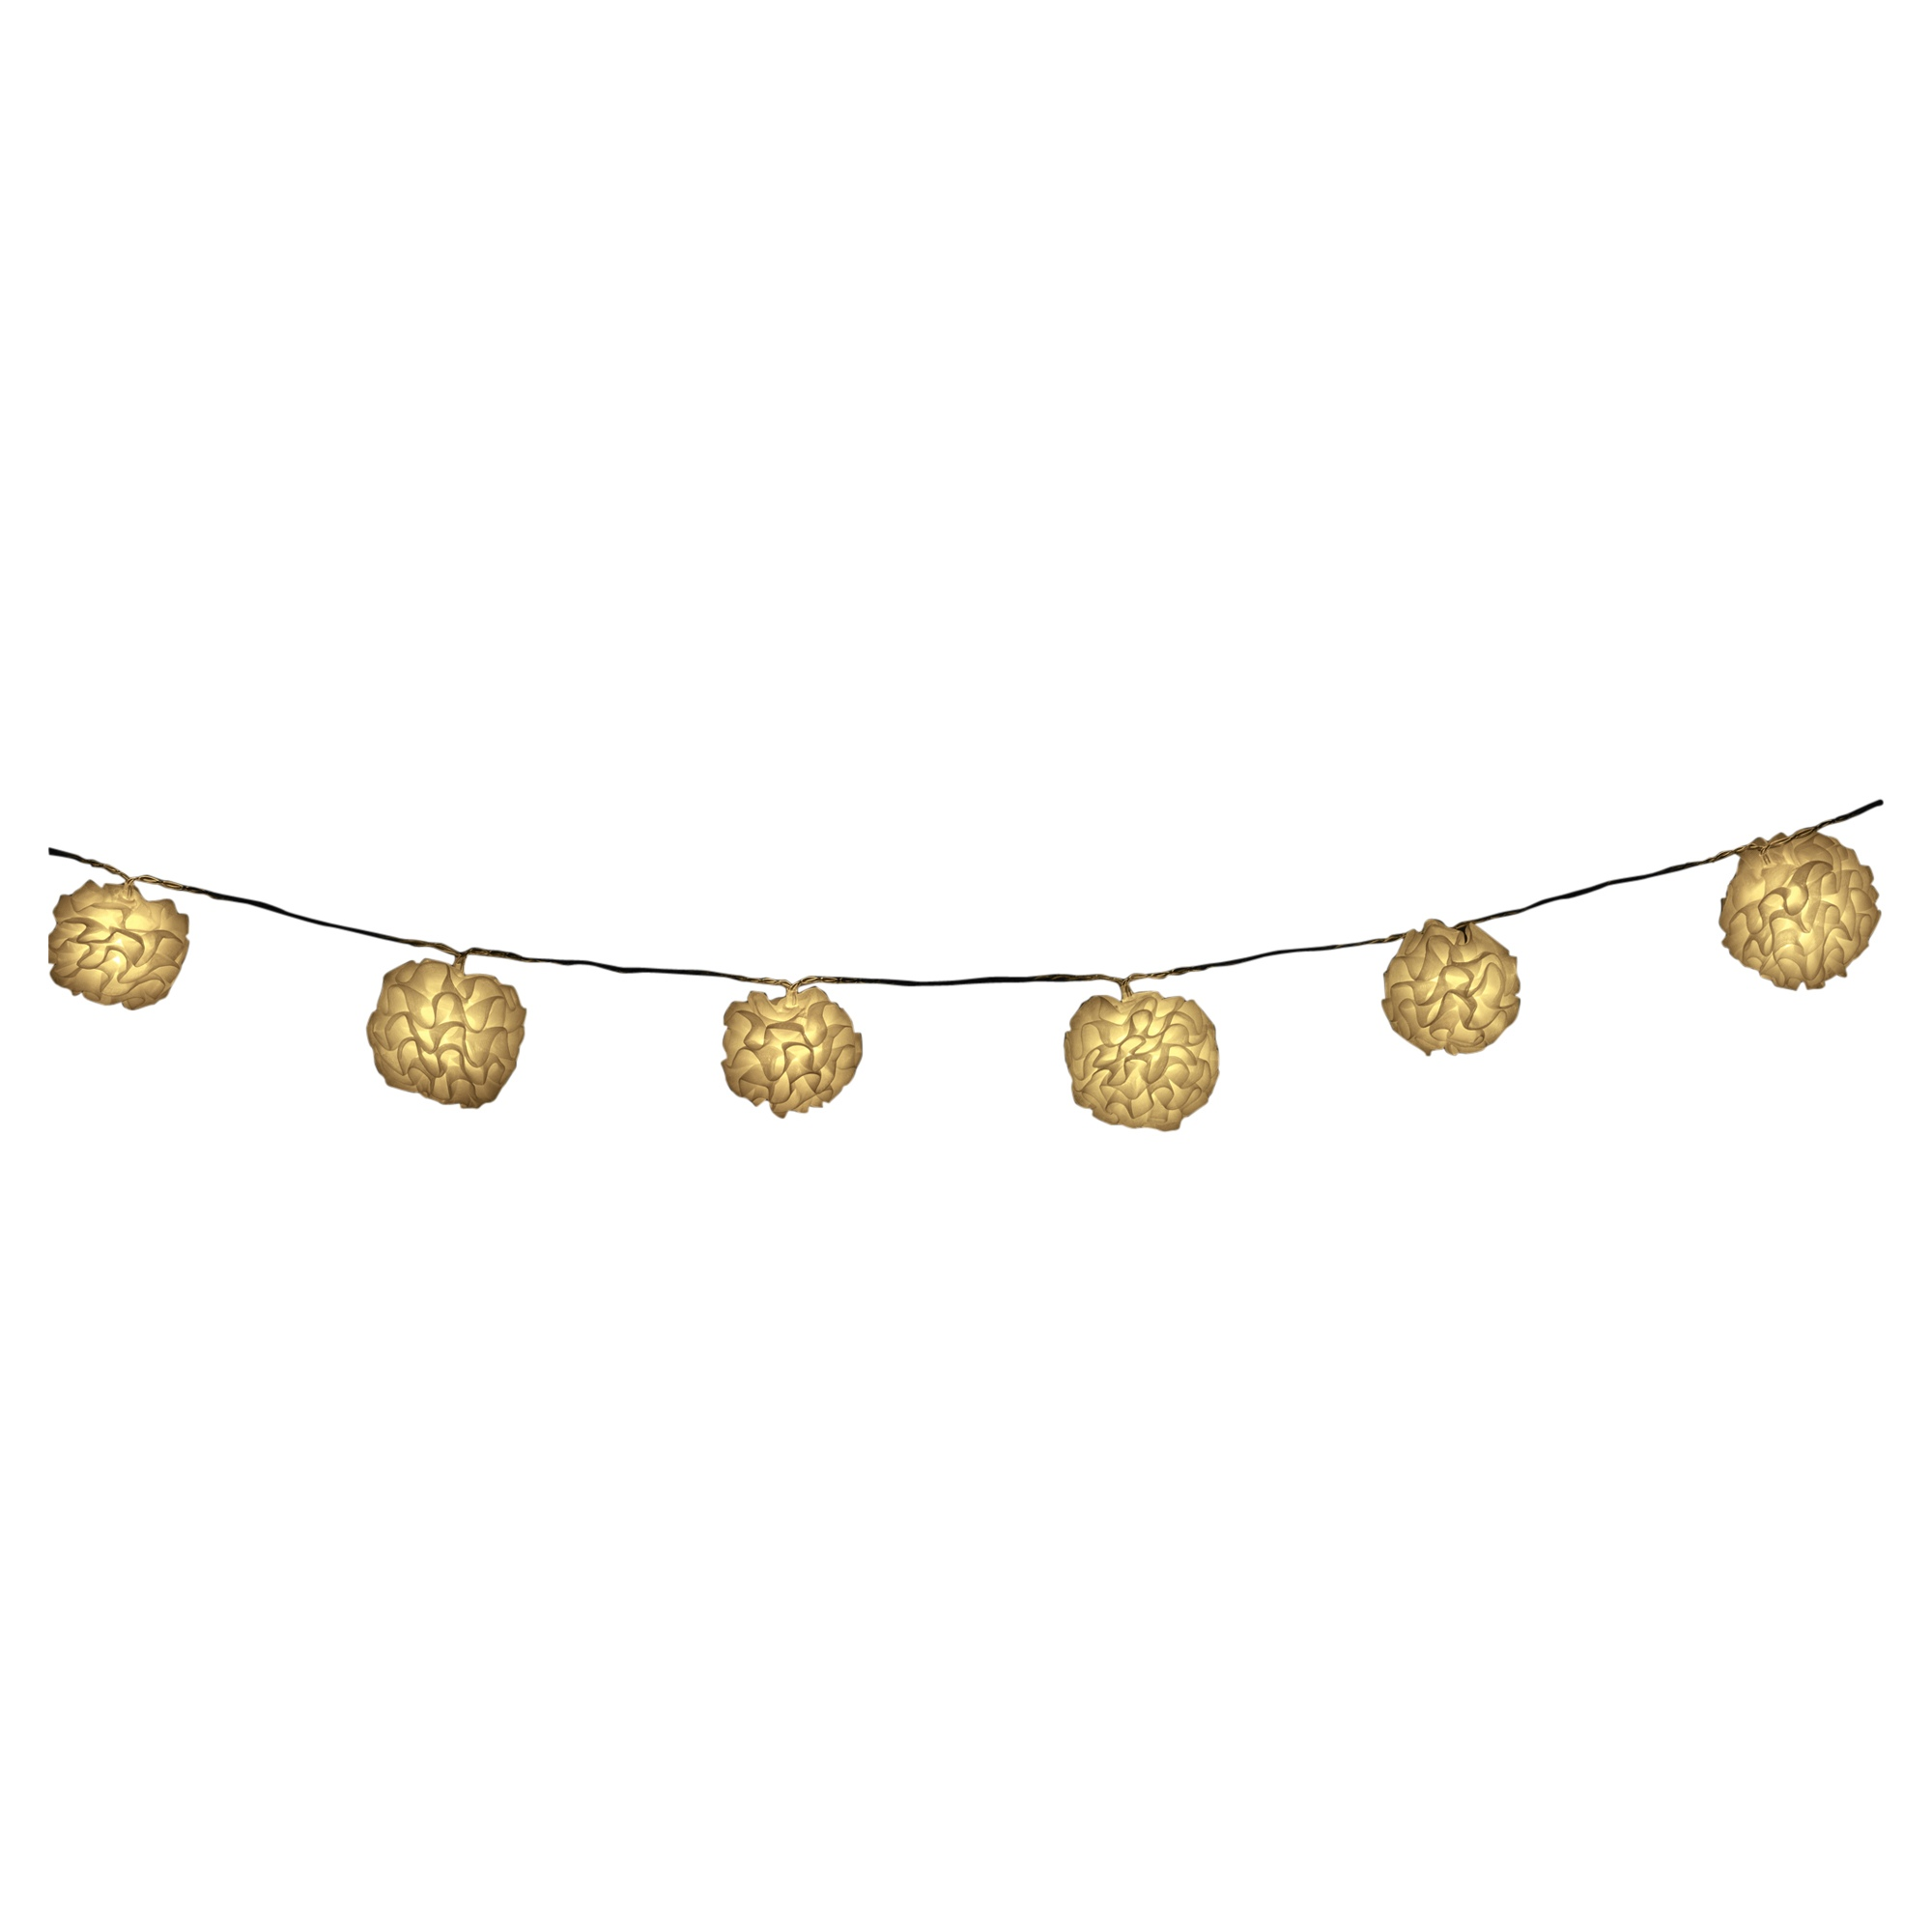 string fairy led lights battery floral wedding lighting indoor party